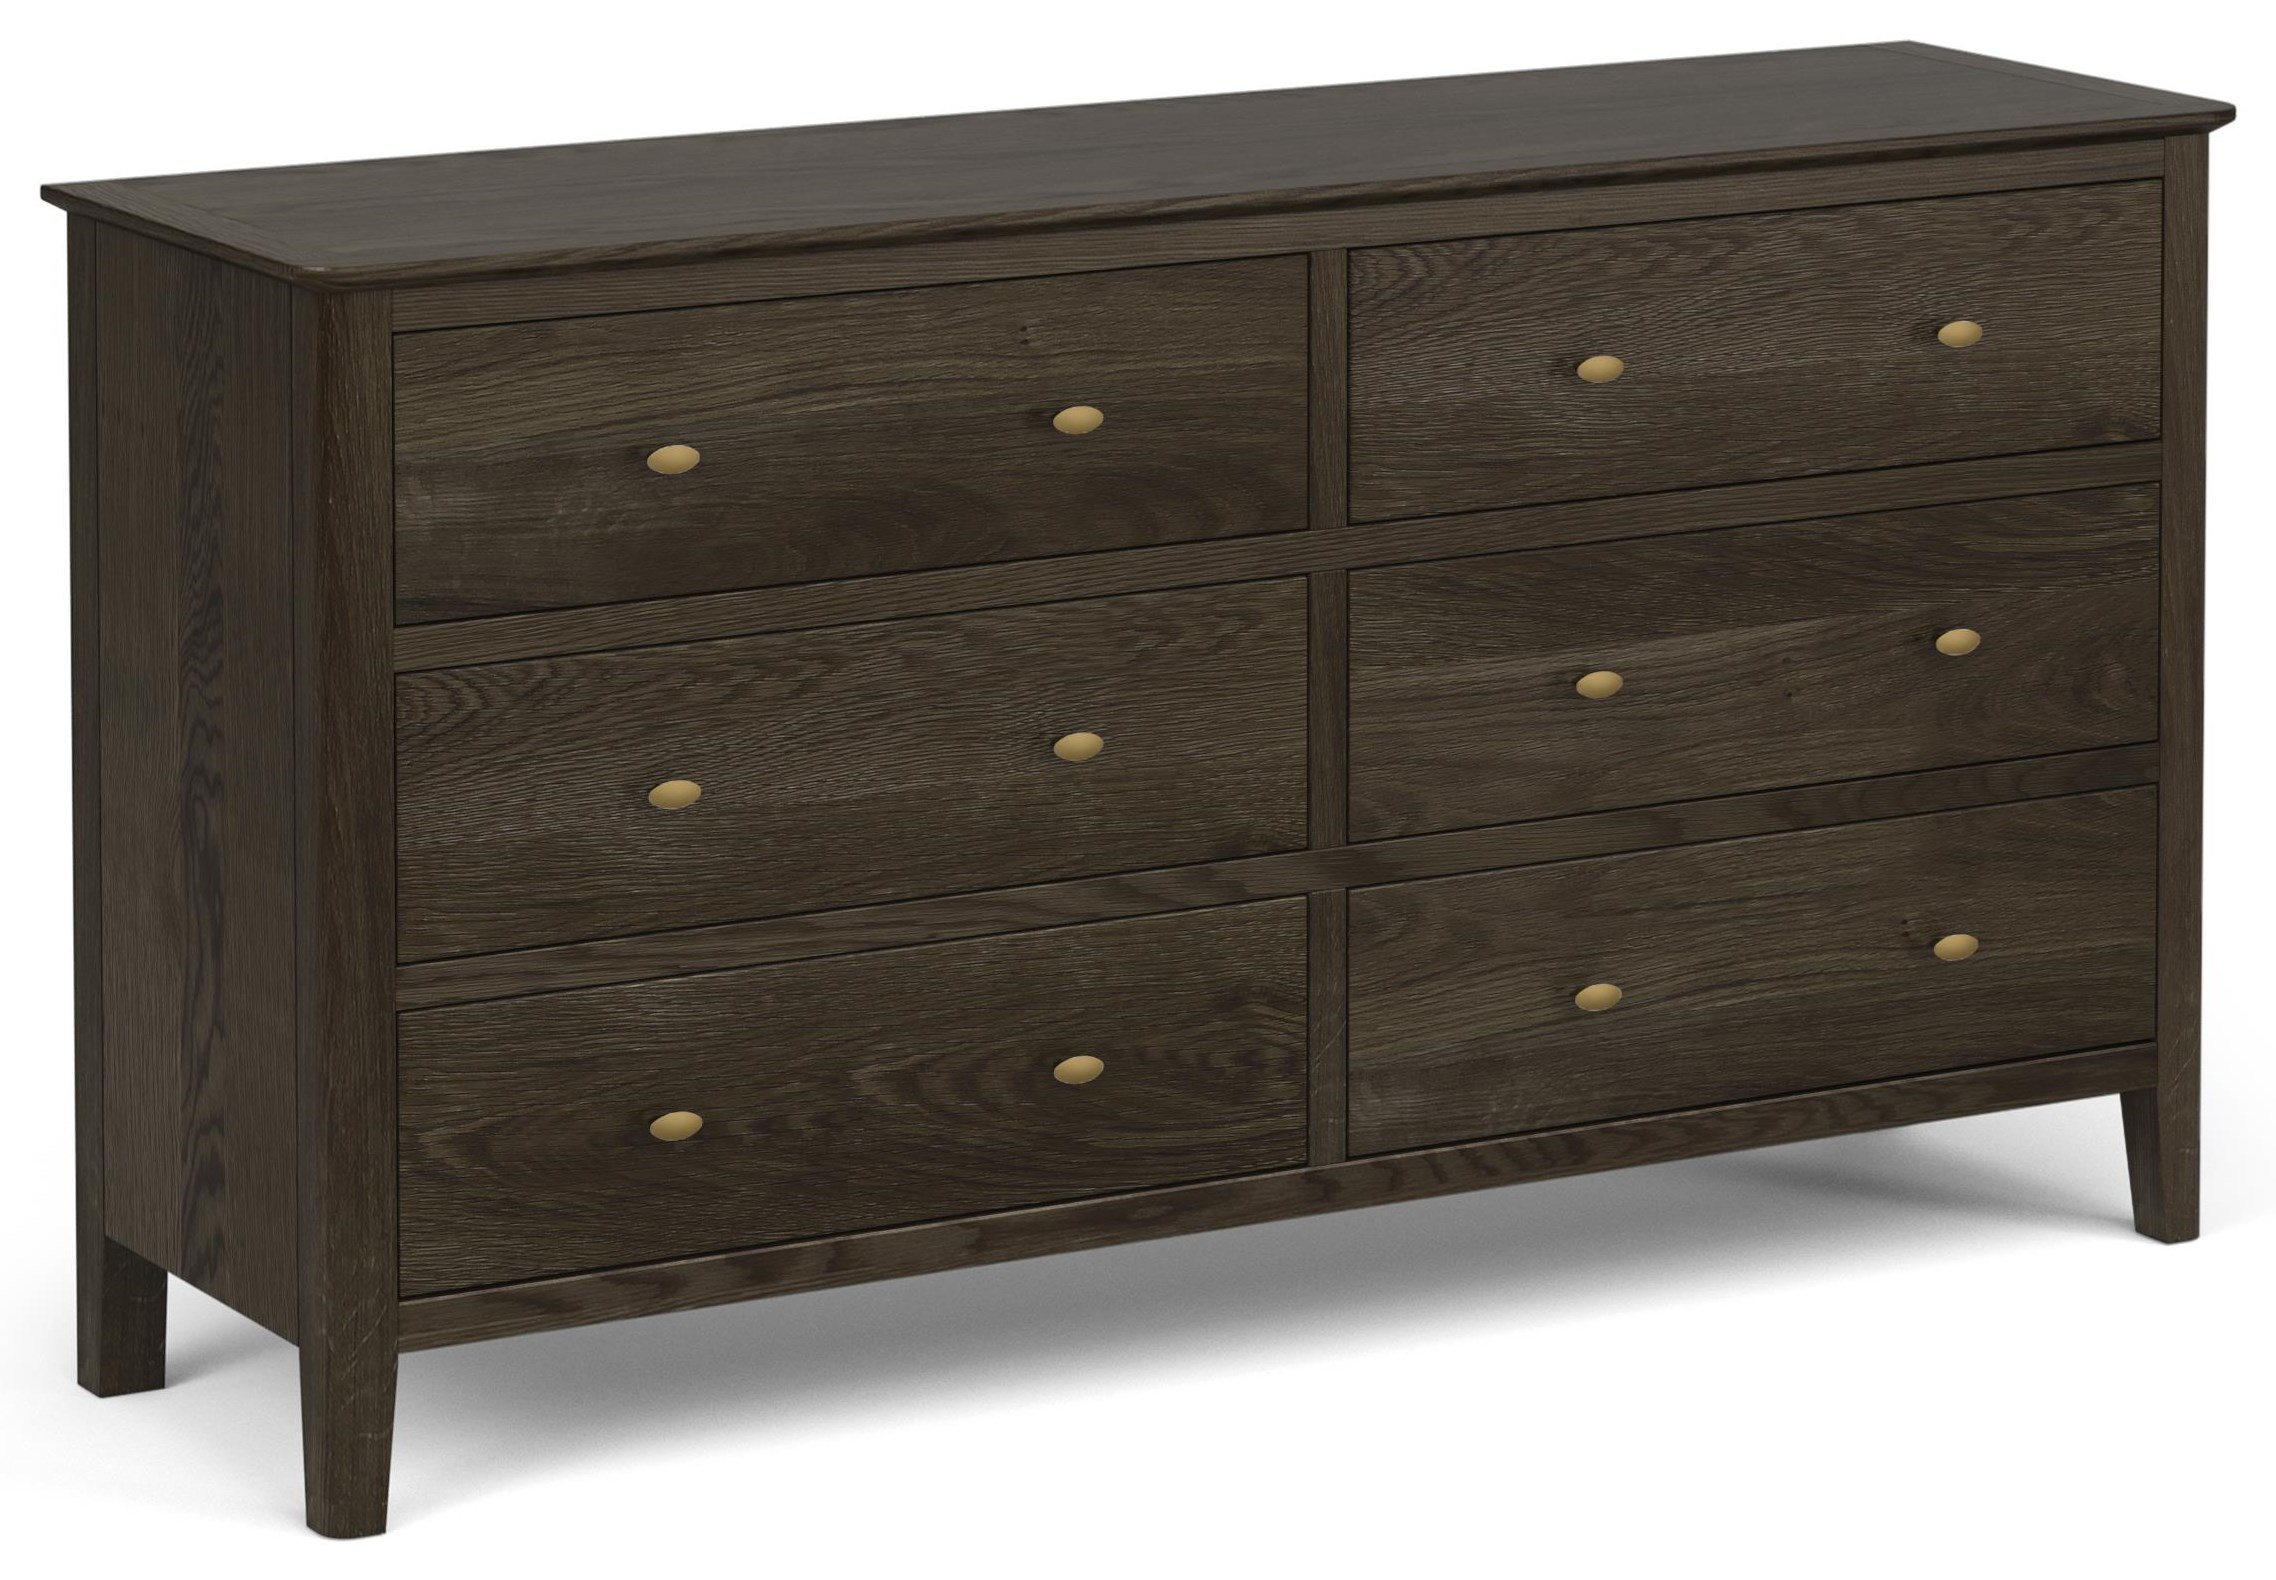 Amherst 6 Drawer Dresser by Global Home at Red Knot